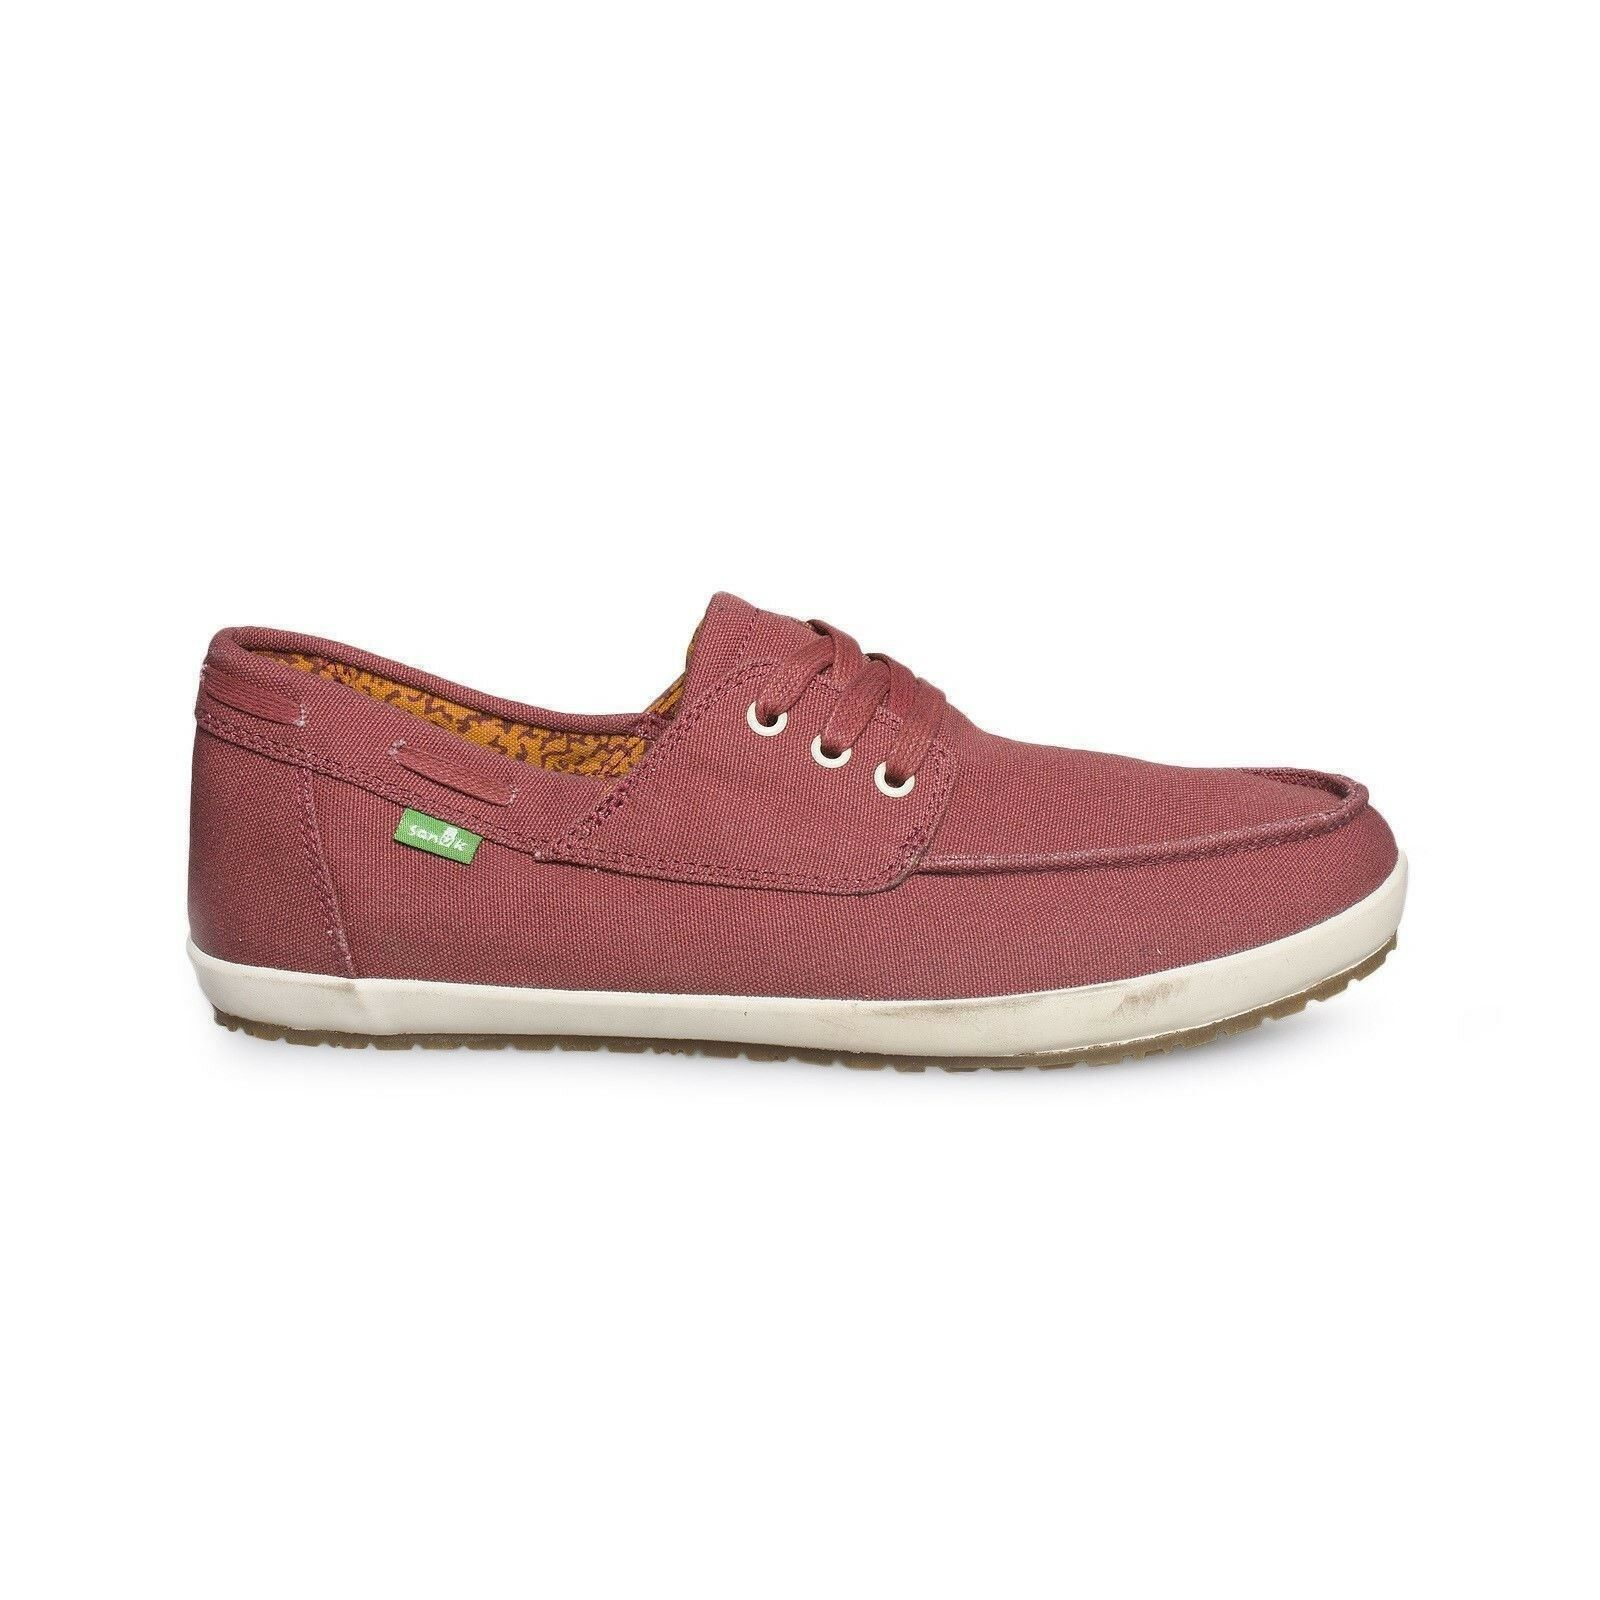 SANUK CASA BARCO DUSTY RED LOAFER CANVAS CASUAL MEN`S SHOES SIZE US 9 NEW